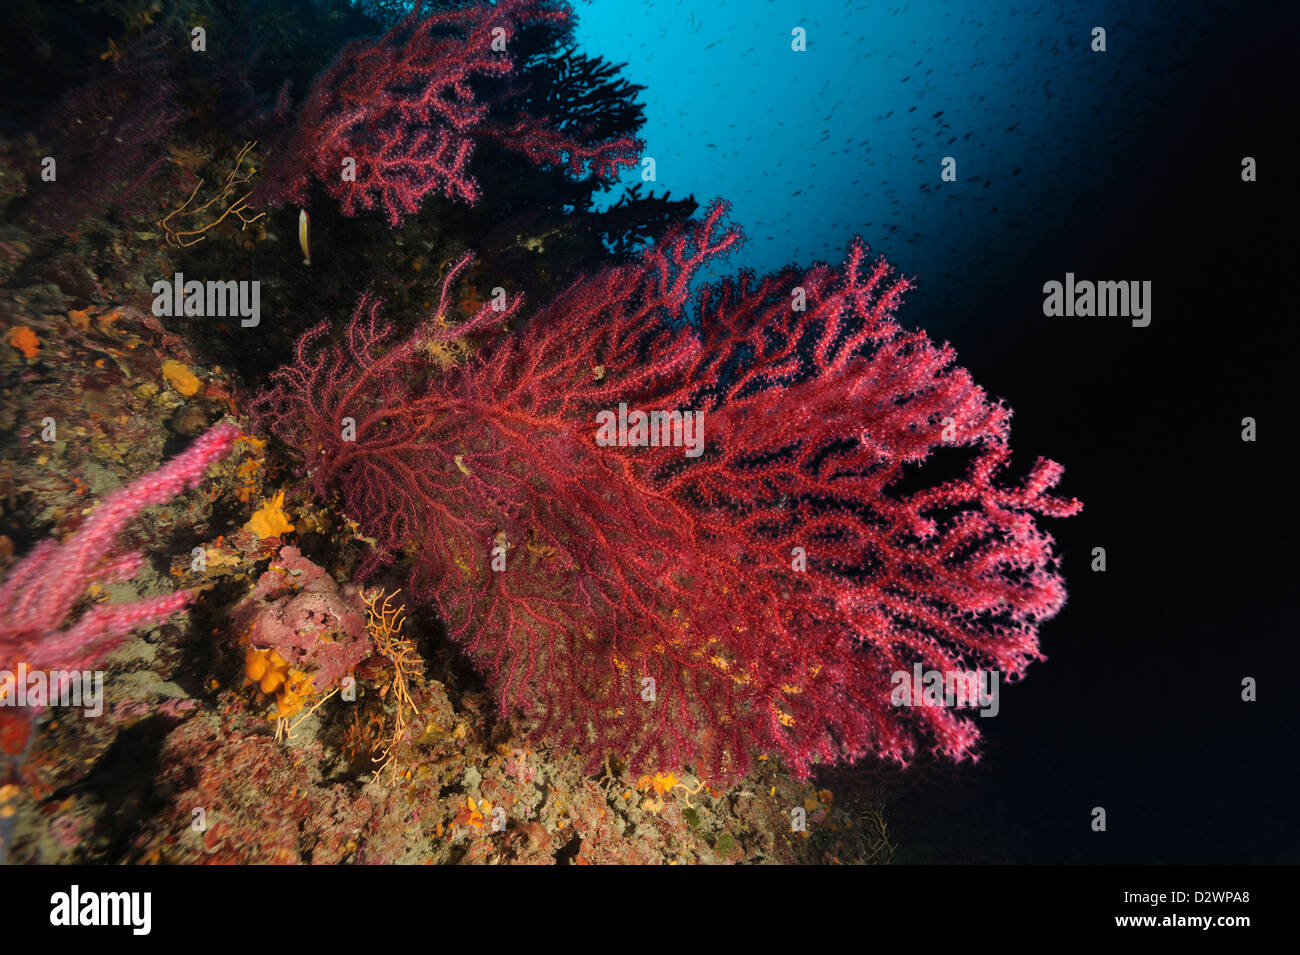 underwater view of red sea fans corals on coral reef, Paramuricea clavata, Mediterranean Sea, France Stock Photo